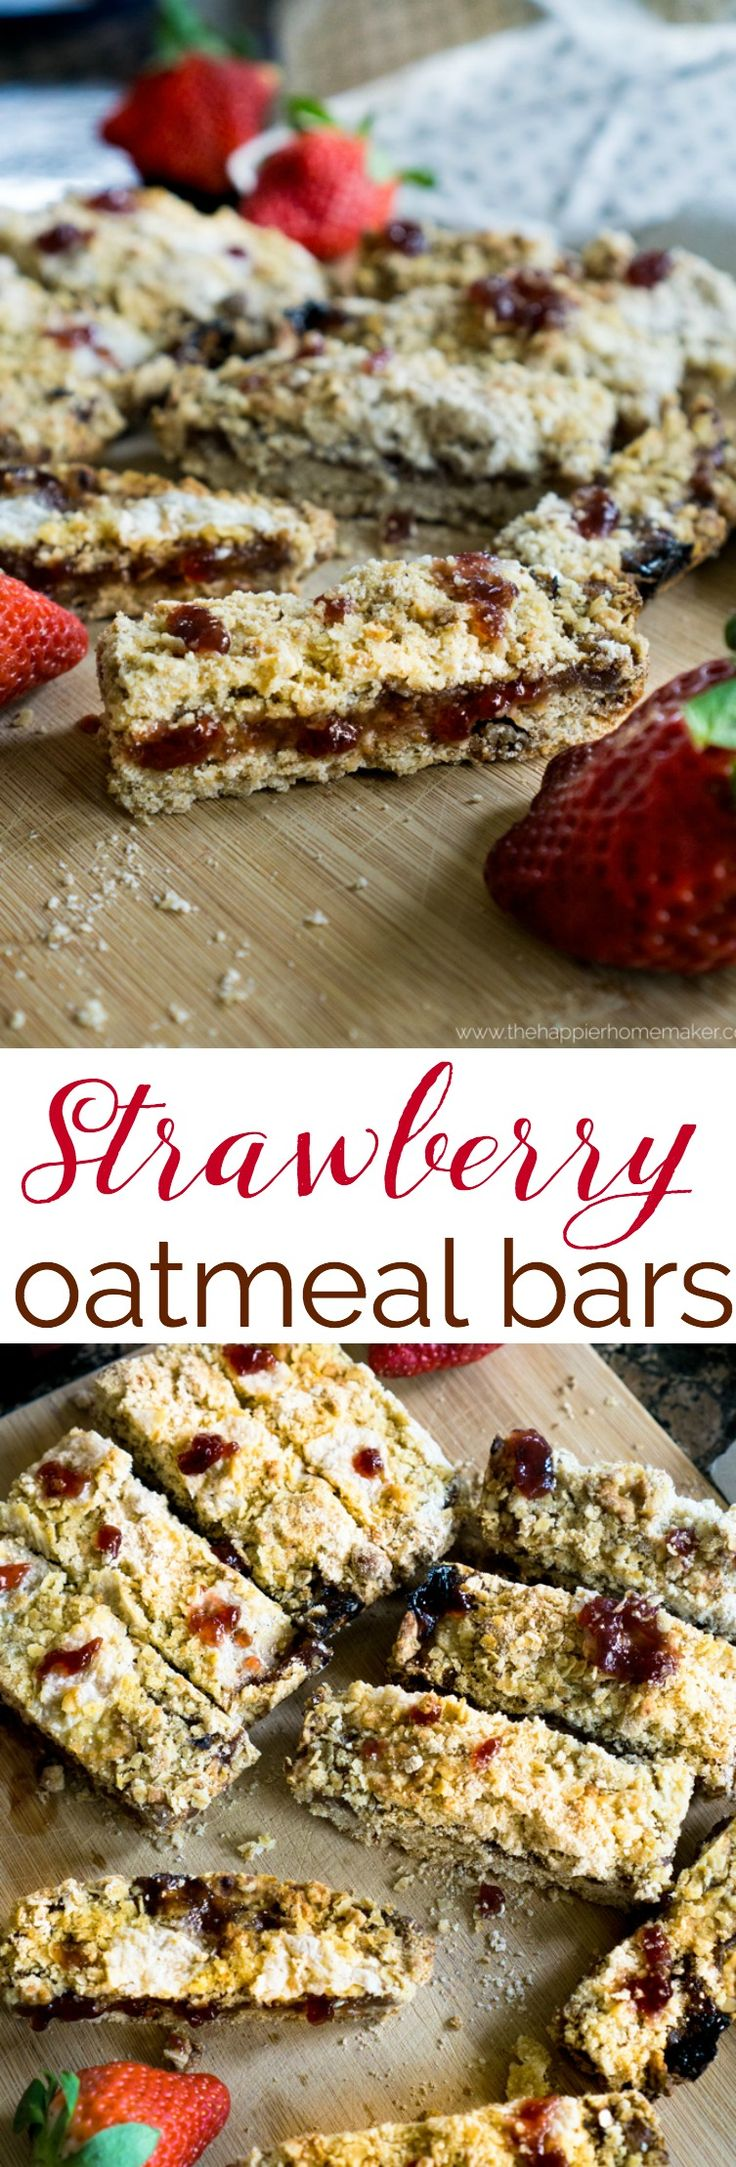 These delicious to make strawberry oatmeal bars are a big hit every time I serve them-so easy even the kids can make them!